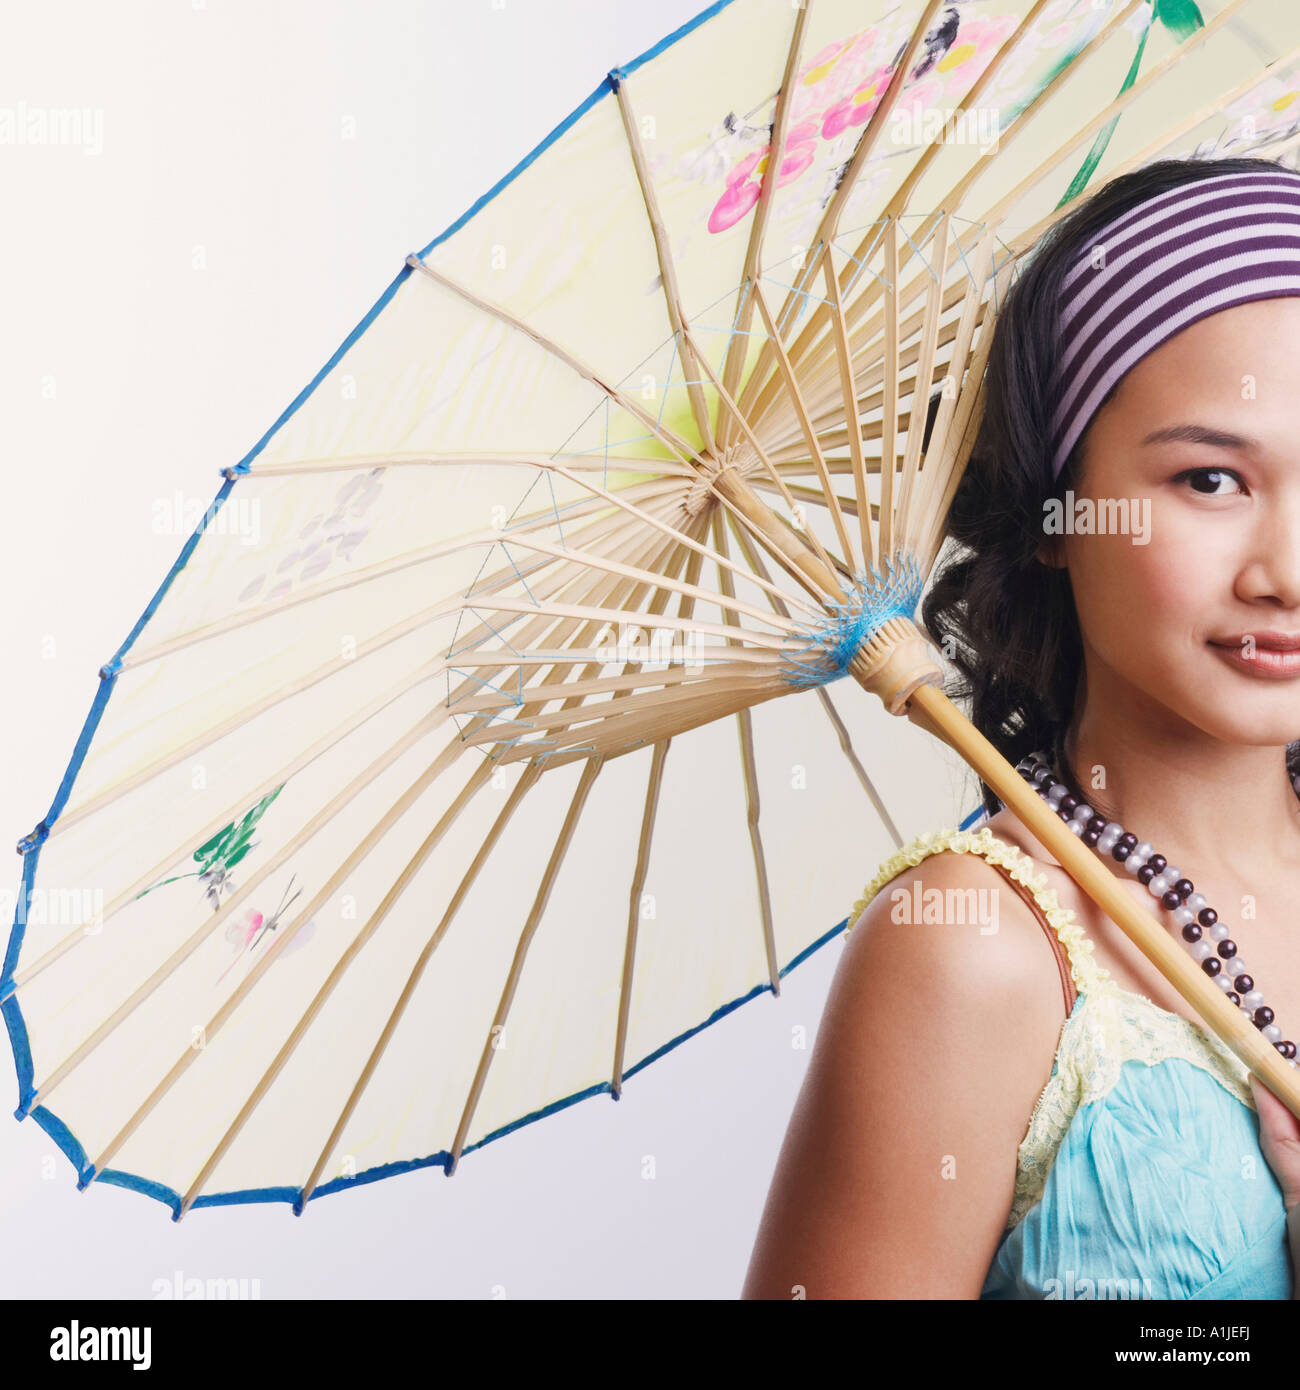 Portrait of a young woman holding a parasol and smiling - Stock Image